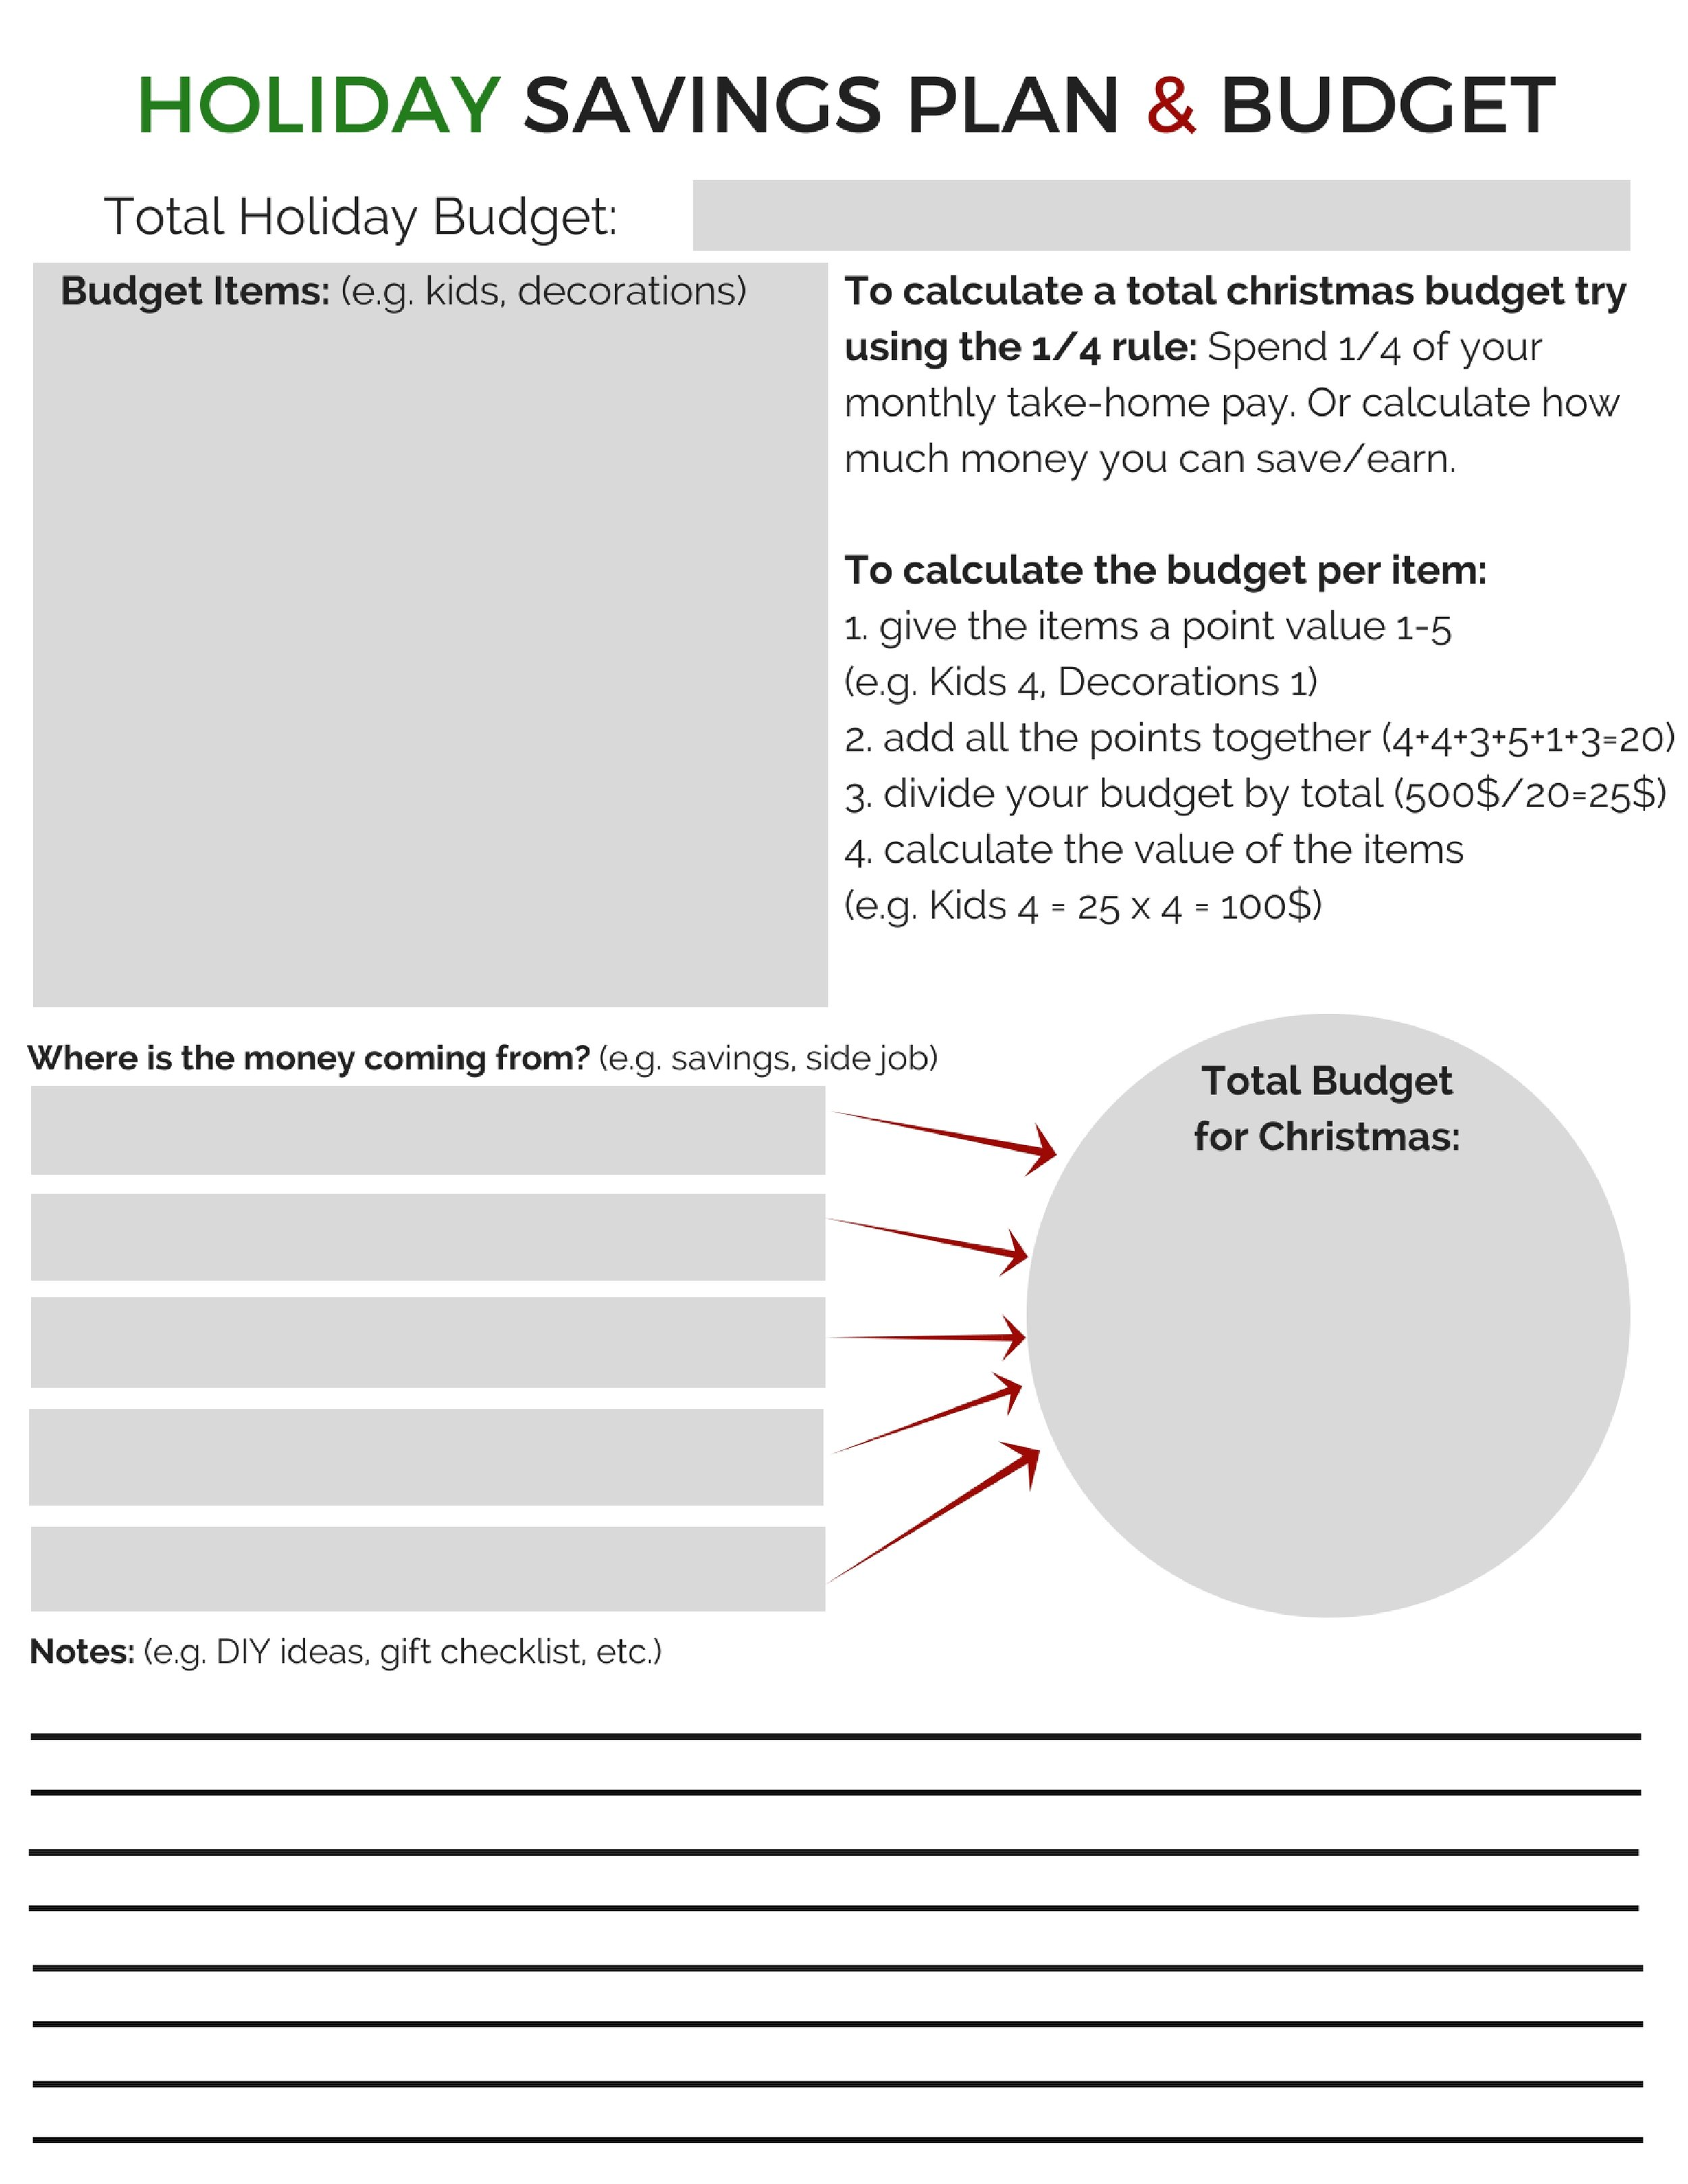 christmas savings plan & budget.jpg